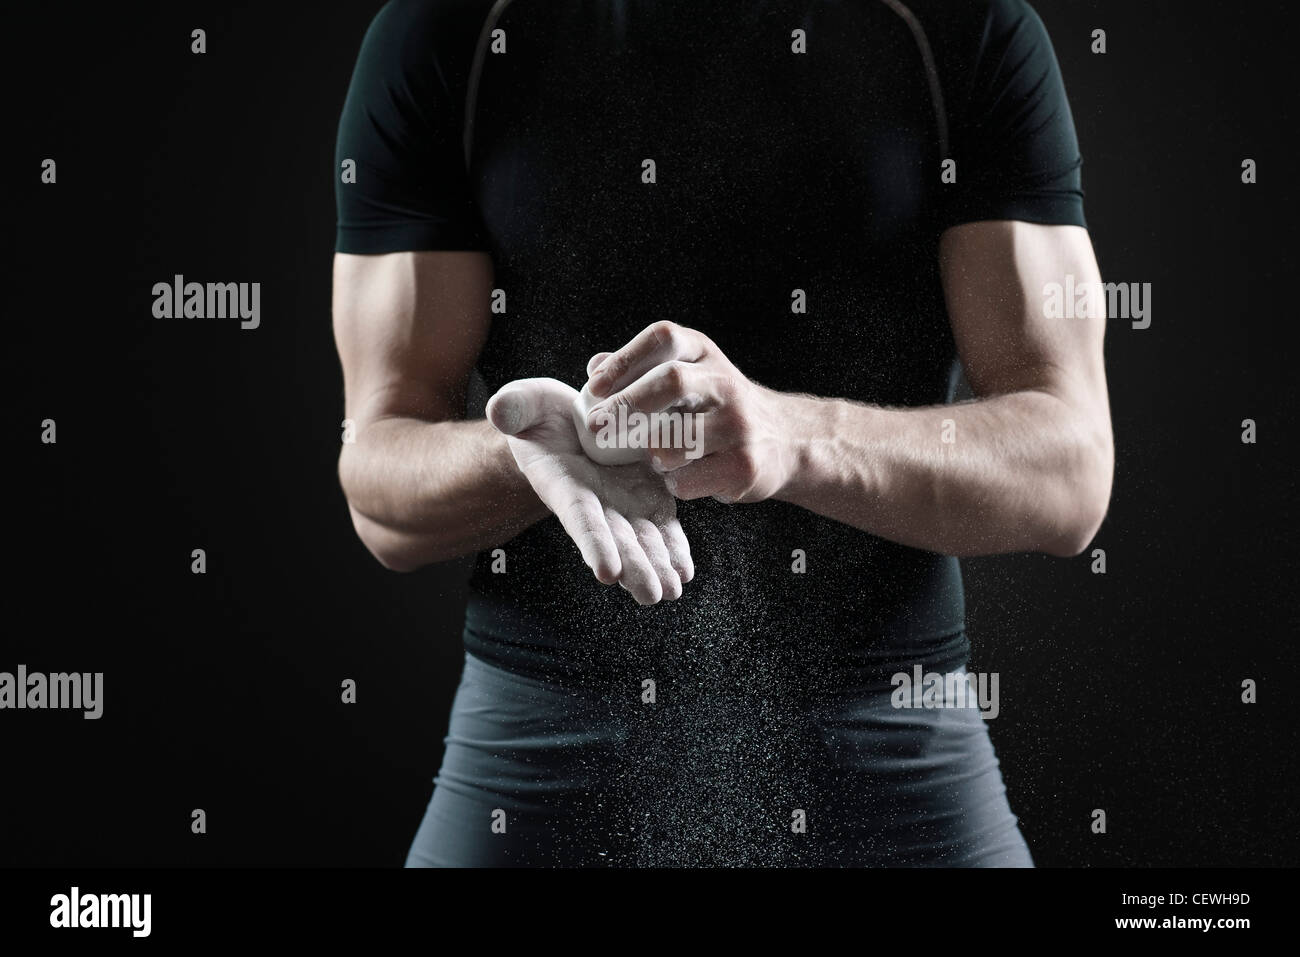 Male athlete applying chalk to hands, mid section - Stock Image